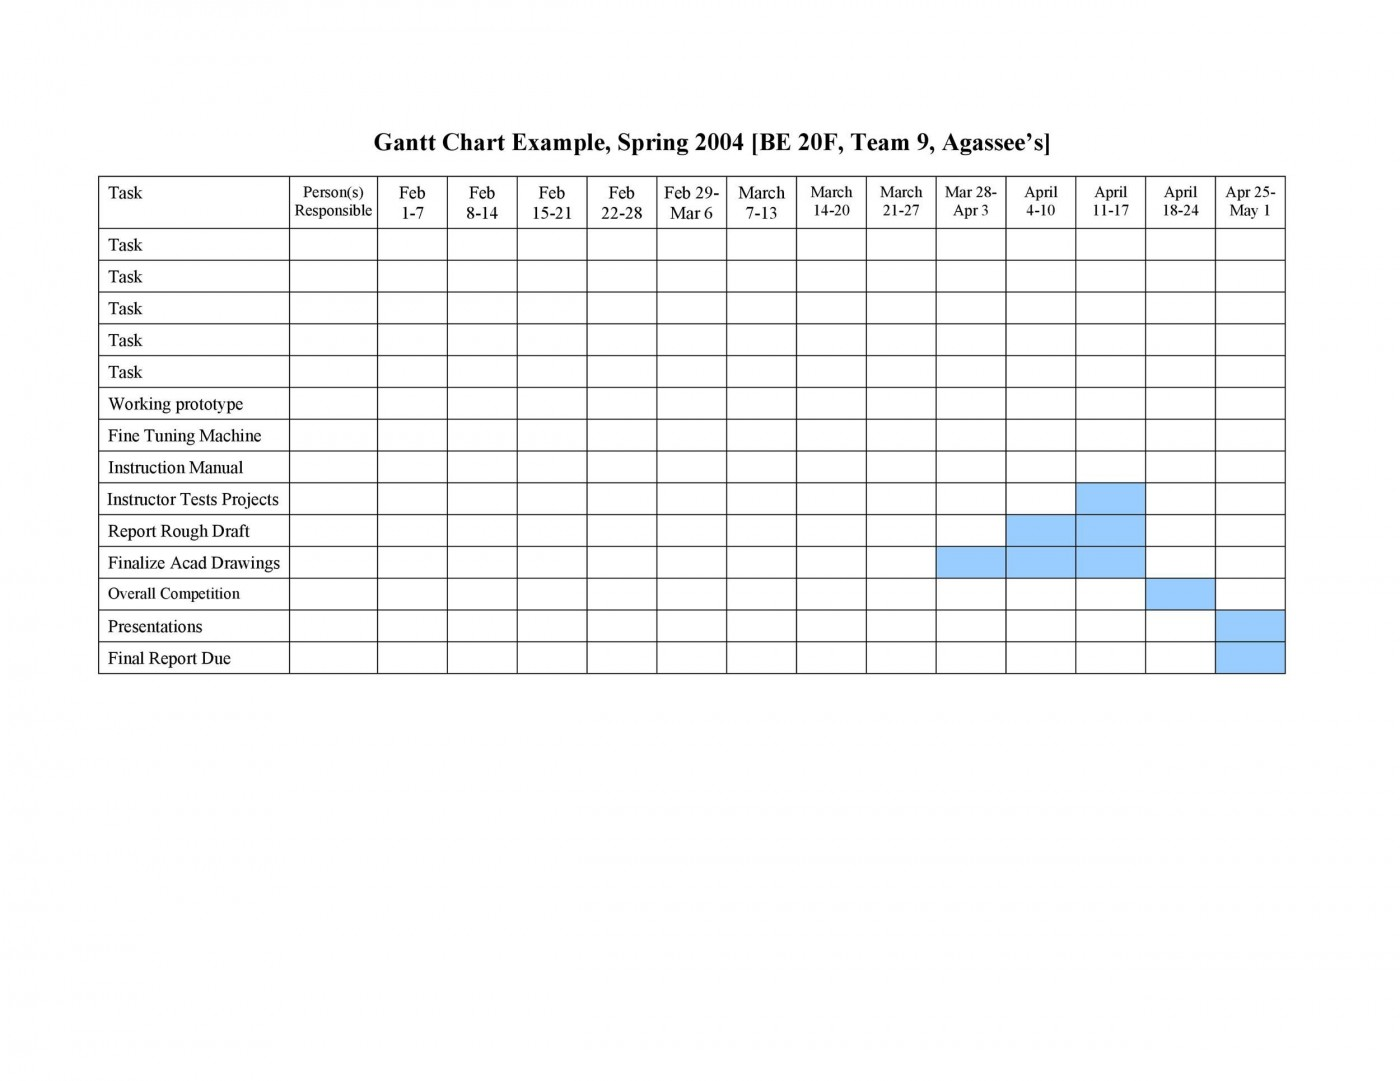 009 Archaicawful Project Gantt Chart Template Excel Free High Def 1400